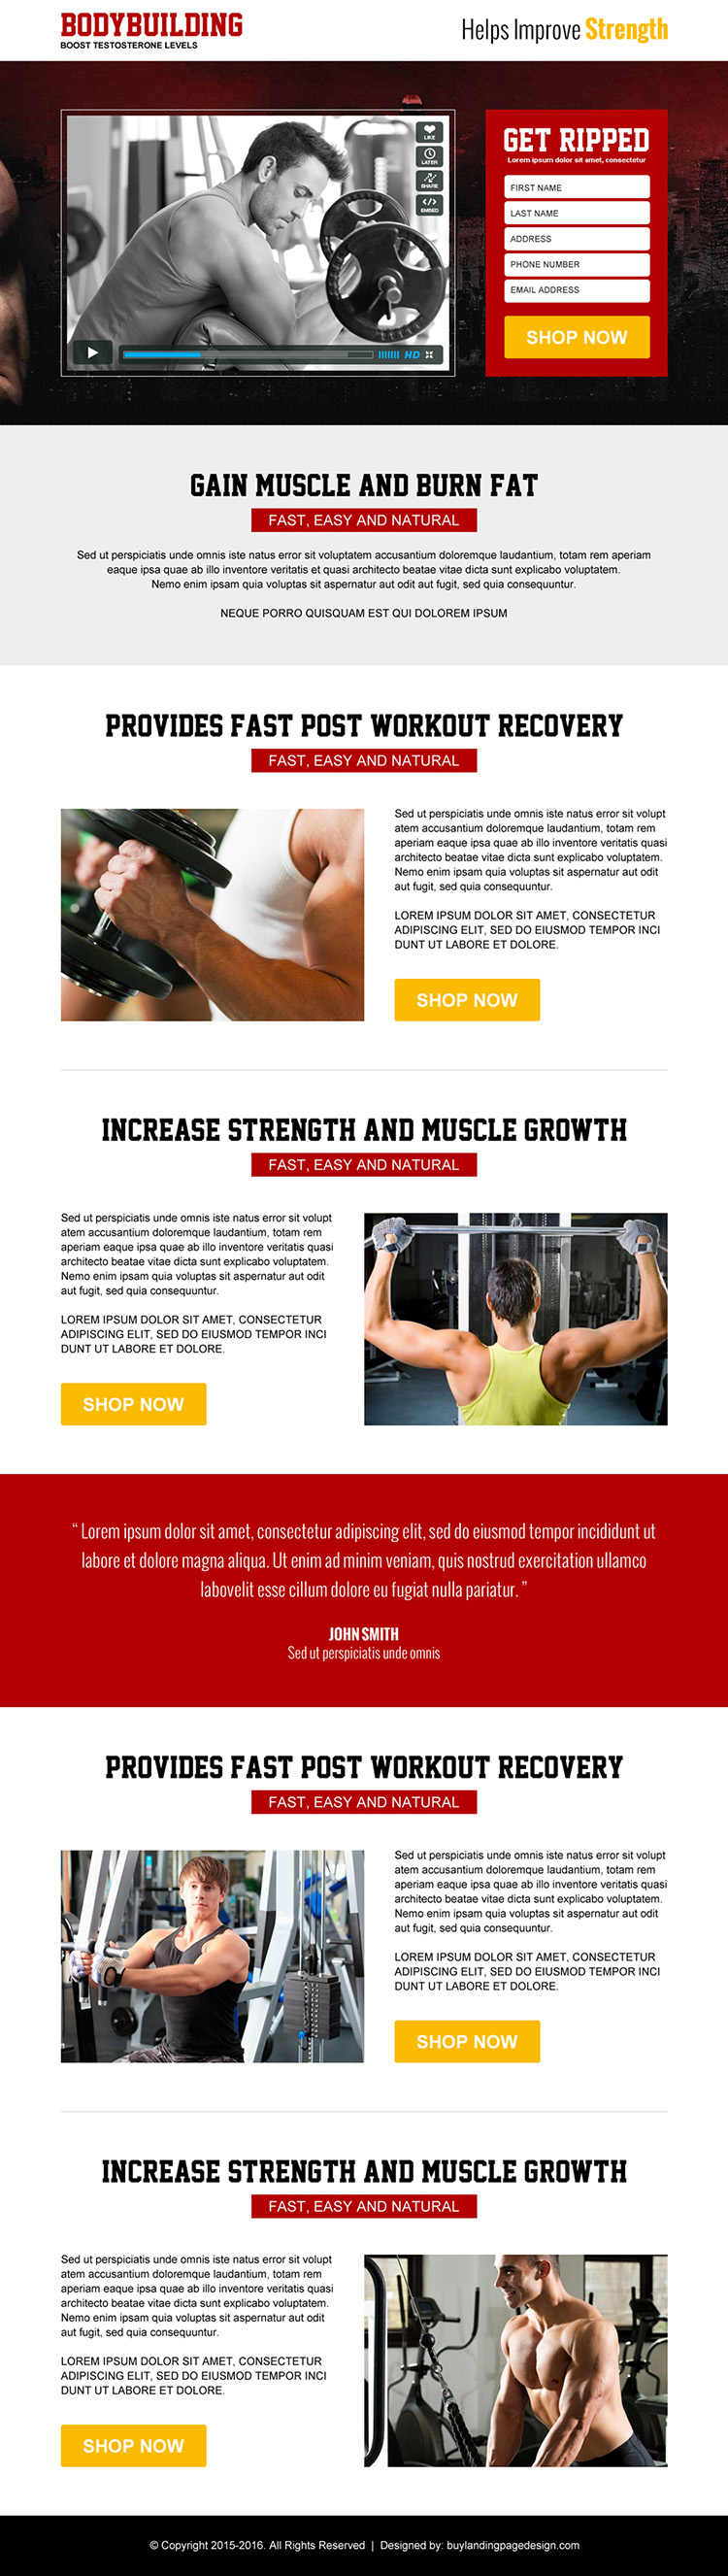 best bodybuilding service responsive video landing page design